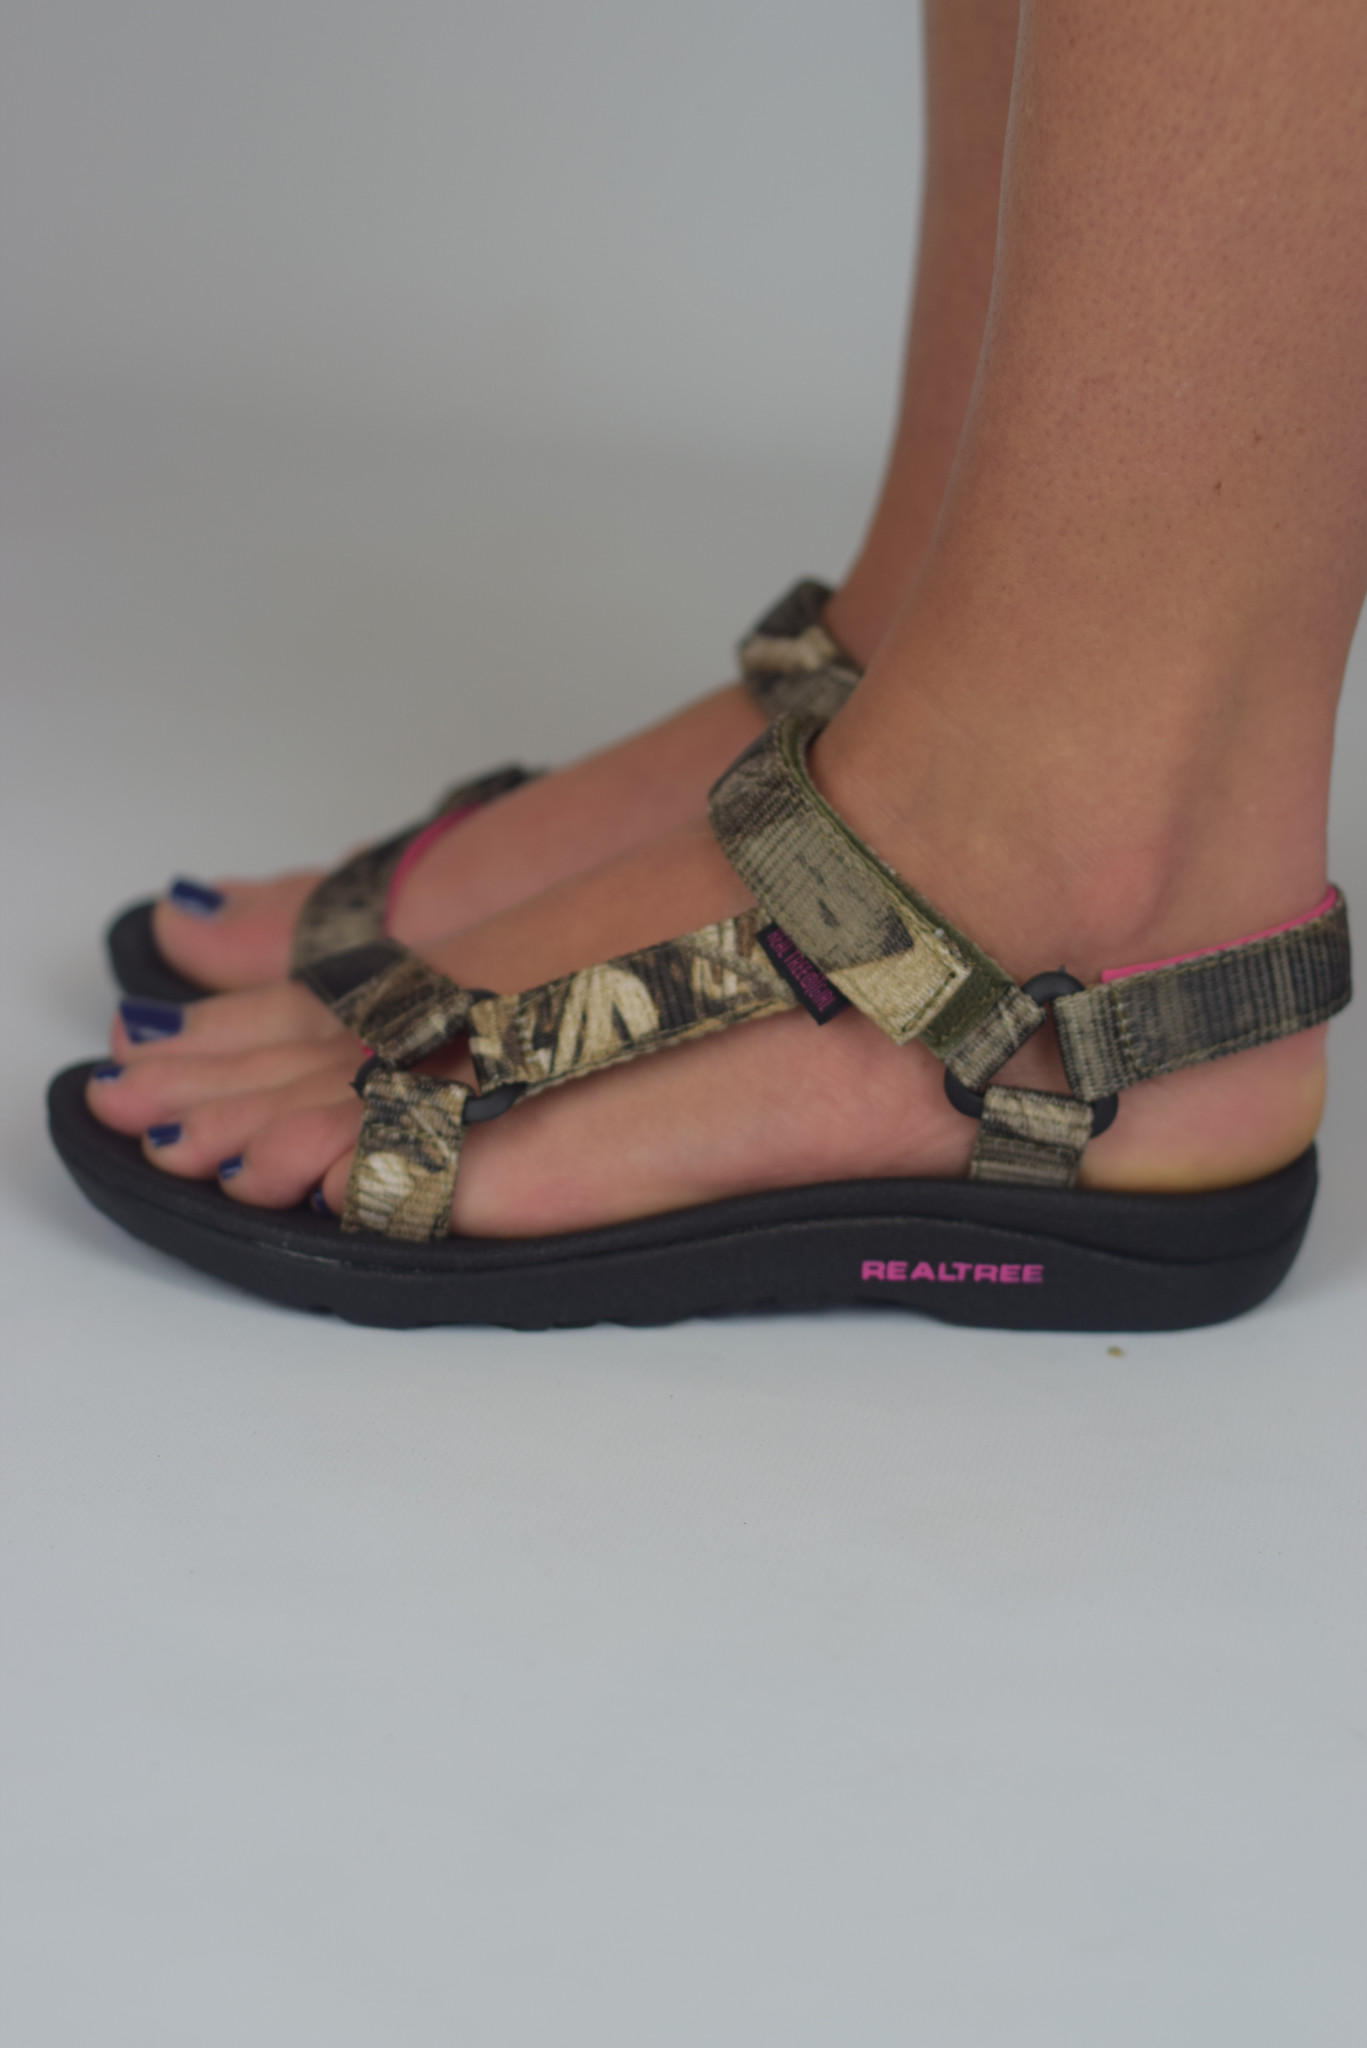 78ad6d92b90dfa Brook Sandal by Realtree  Pink Camo  from Shoe Craze